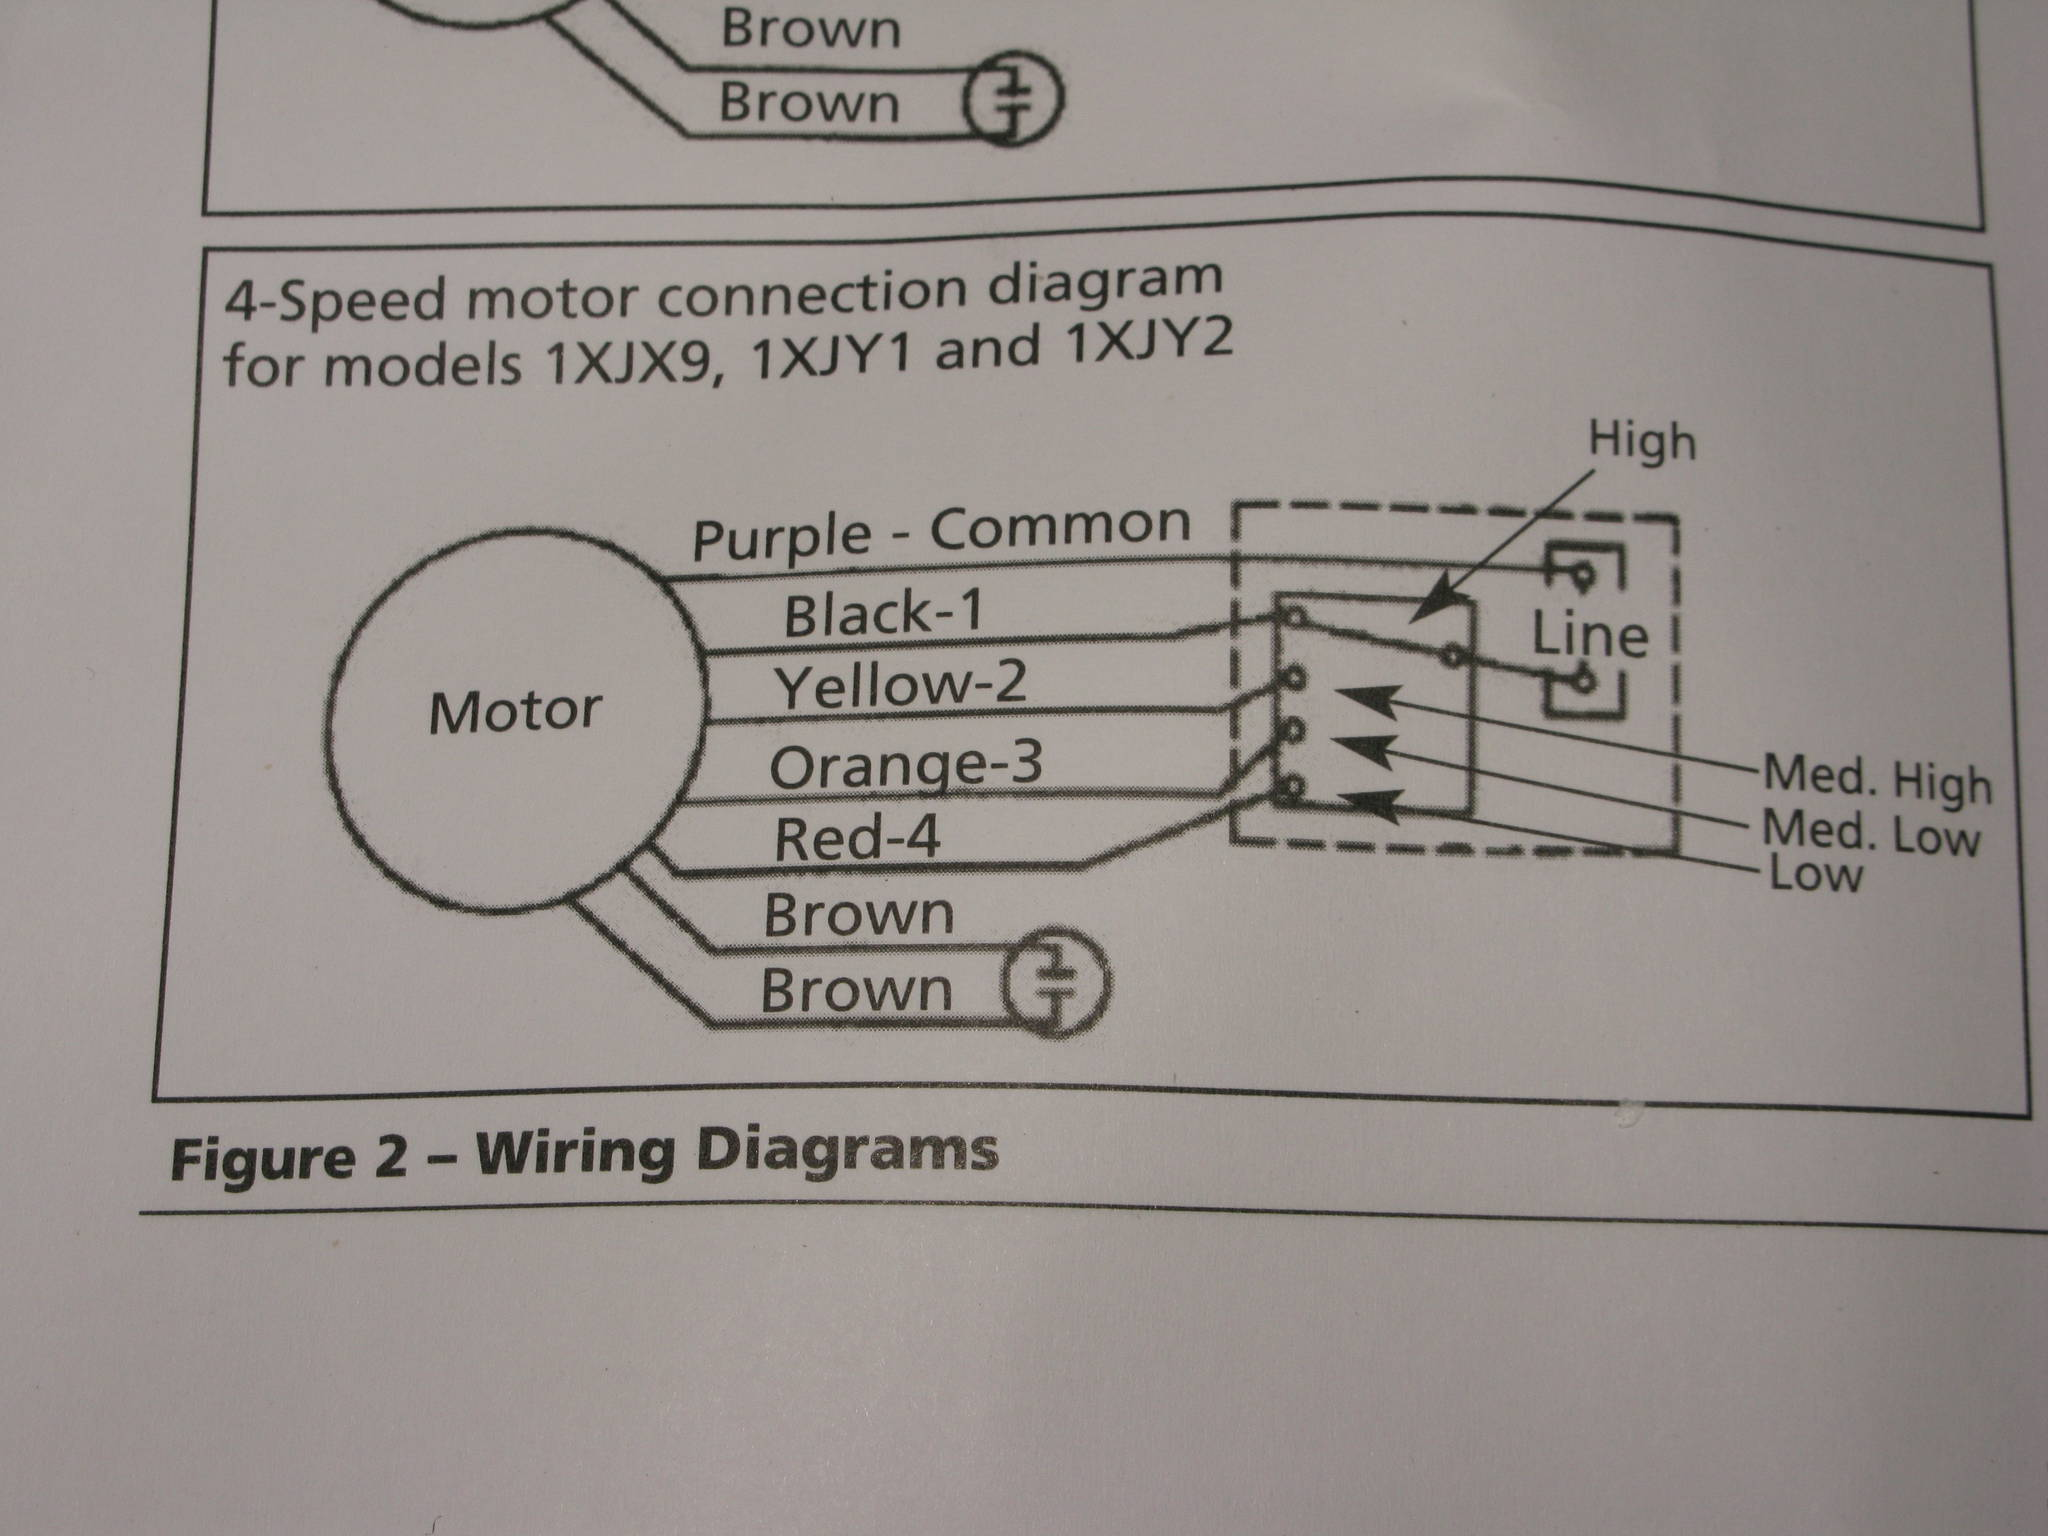 dayton electric motors wire diagrams 3 wiring diagram used dayton electric motor wiring diagram wiring diagram dayton electric motor wiring diagram